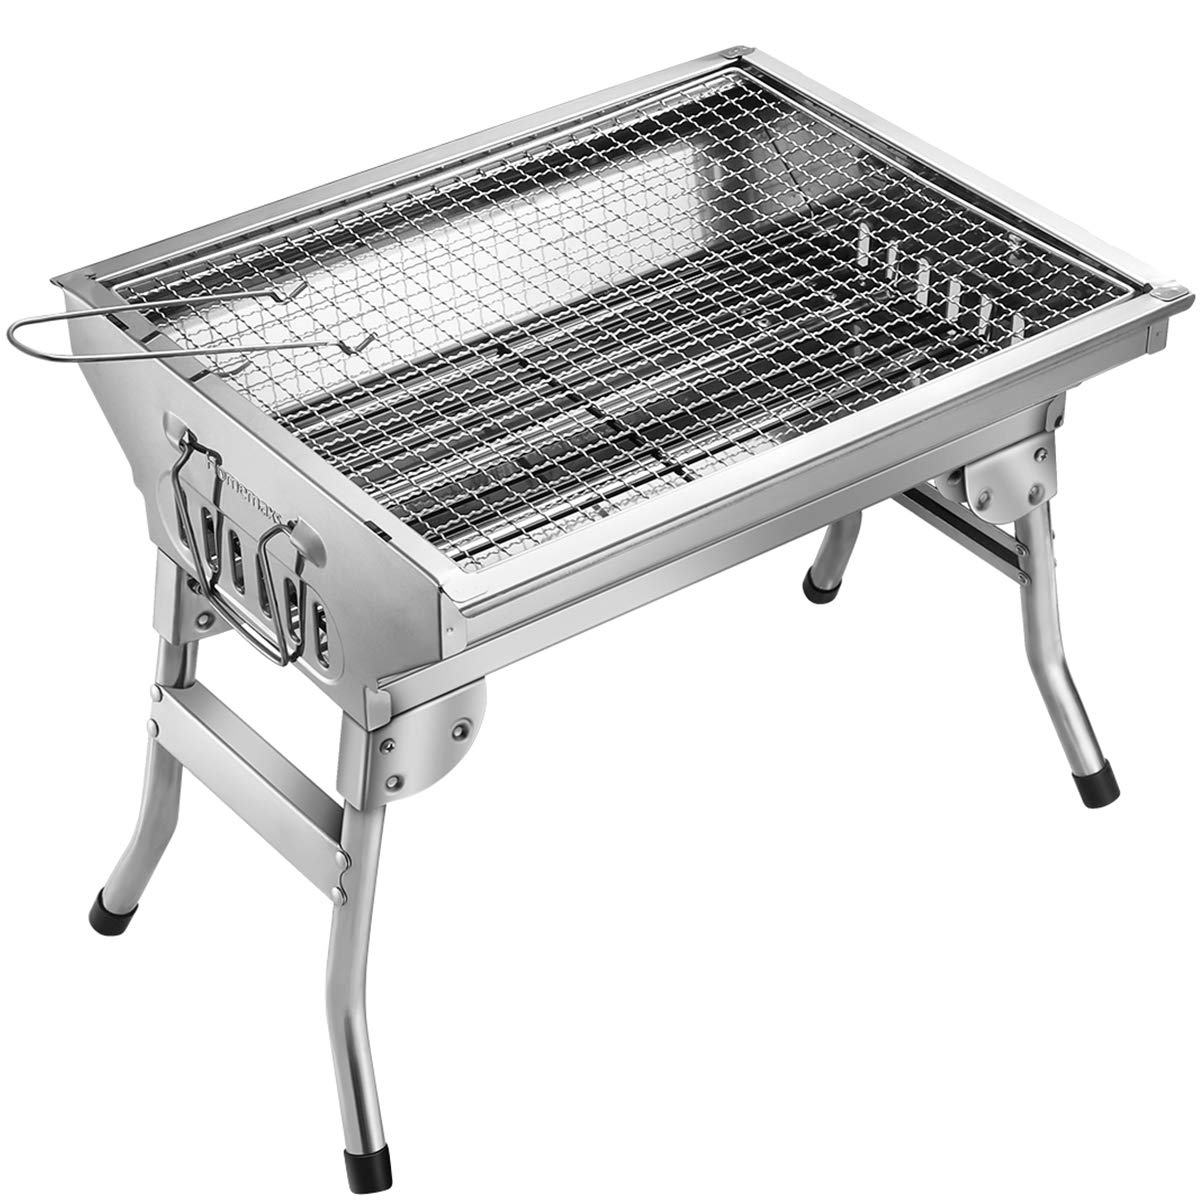 Homemaxs BBQ Grill, Stainless Steel BBQ Charcoal Grill, Portable Folding Outdoor Barbecue Griddle Cooking Appliance for Camping, Tailgating, Backpacking, Hiking, Picnic by Homemaxs